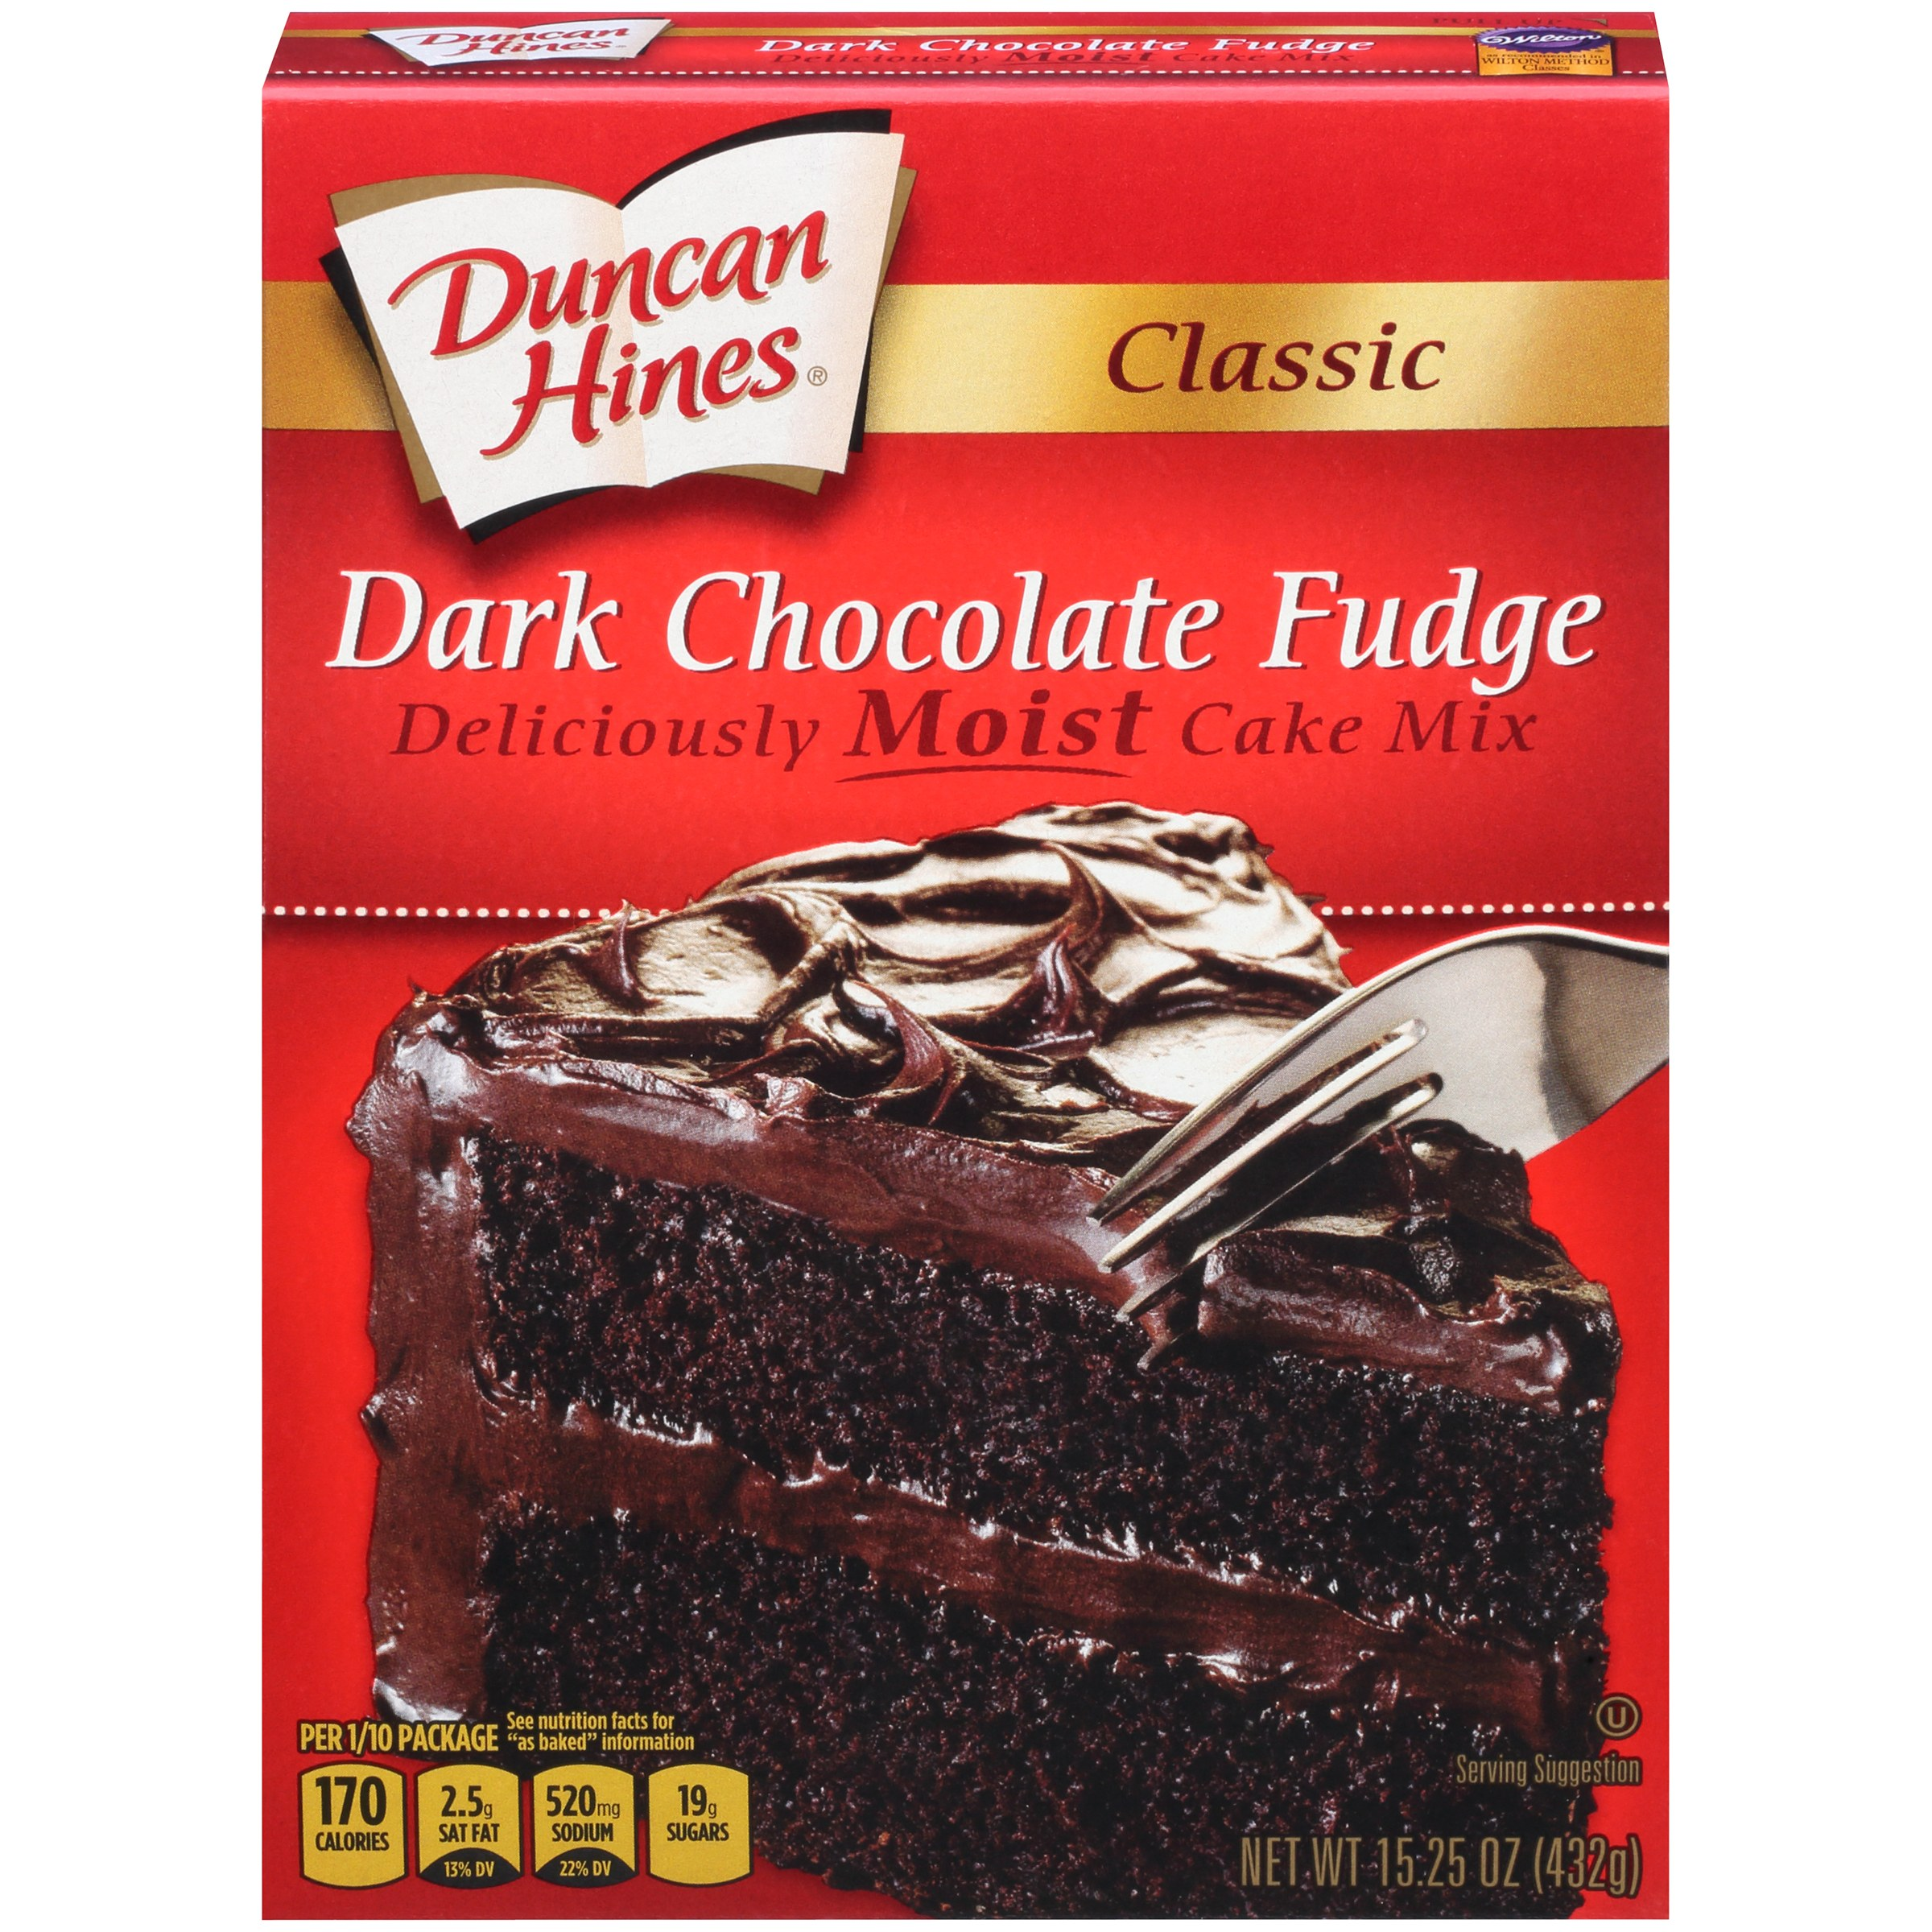 6de31bd70c38 (2 pack) Duncan Hines Classic Dark Chocolate Fudge Cake Mix 15.25 oz -  Walmart.com